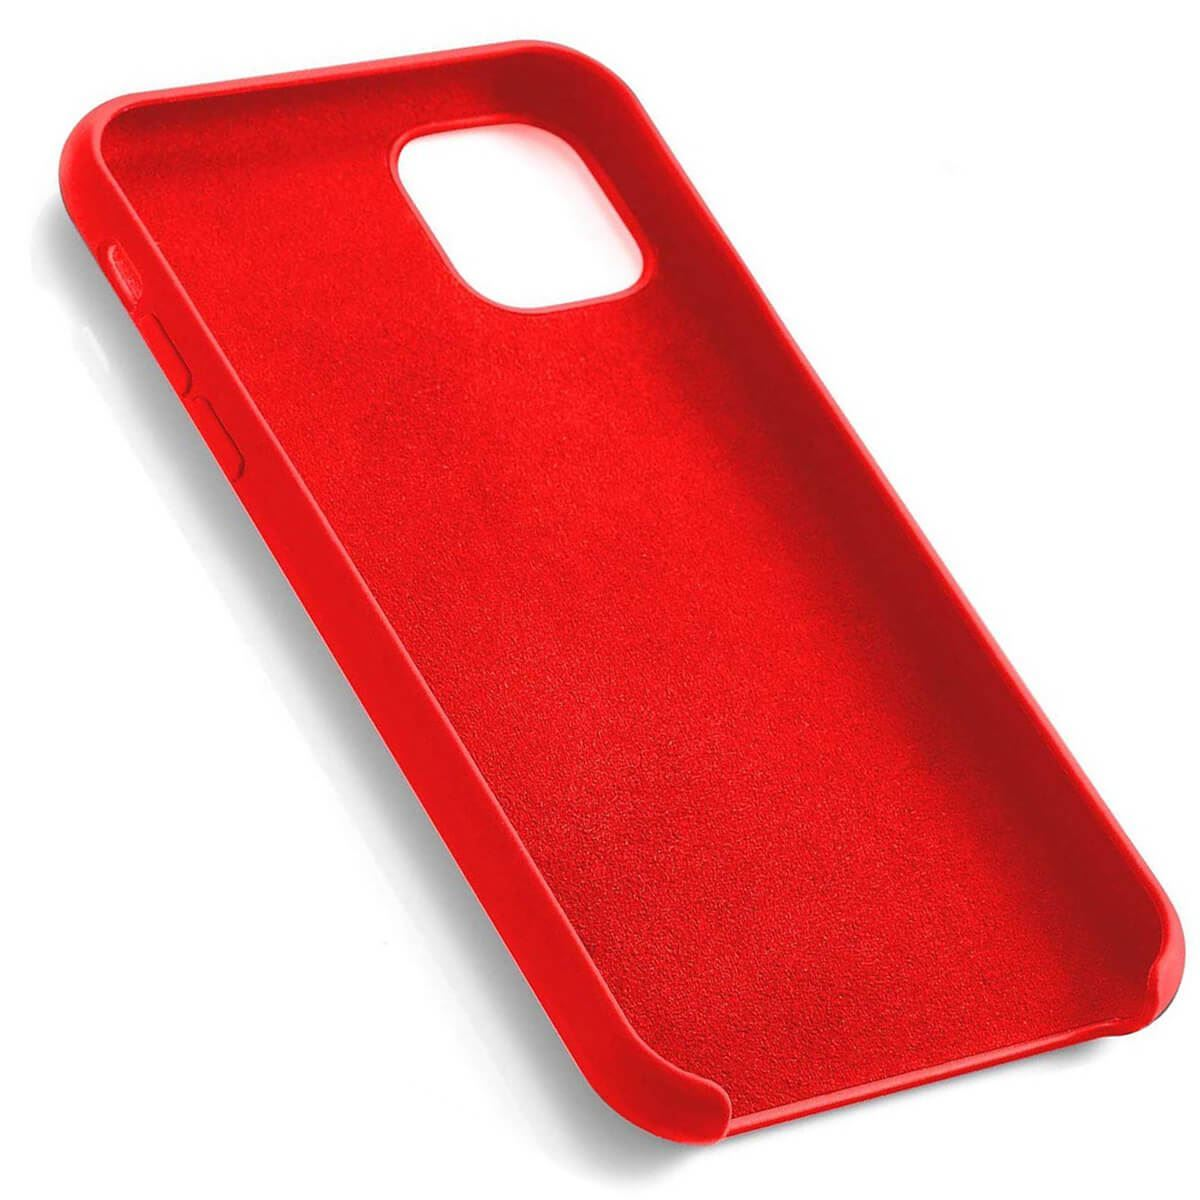 Liquid-Silicone-Shockproof-Case-For-Apple-iPhone-Soft-Matte-Back-Phone-Cover thumbnail 11